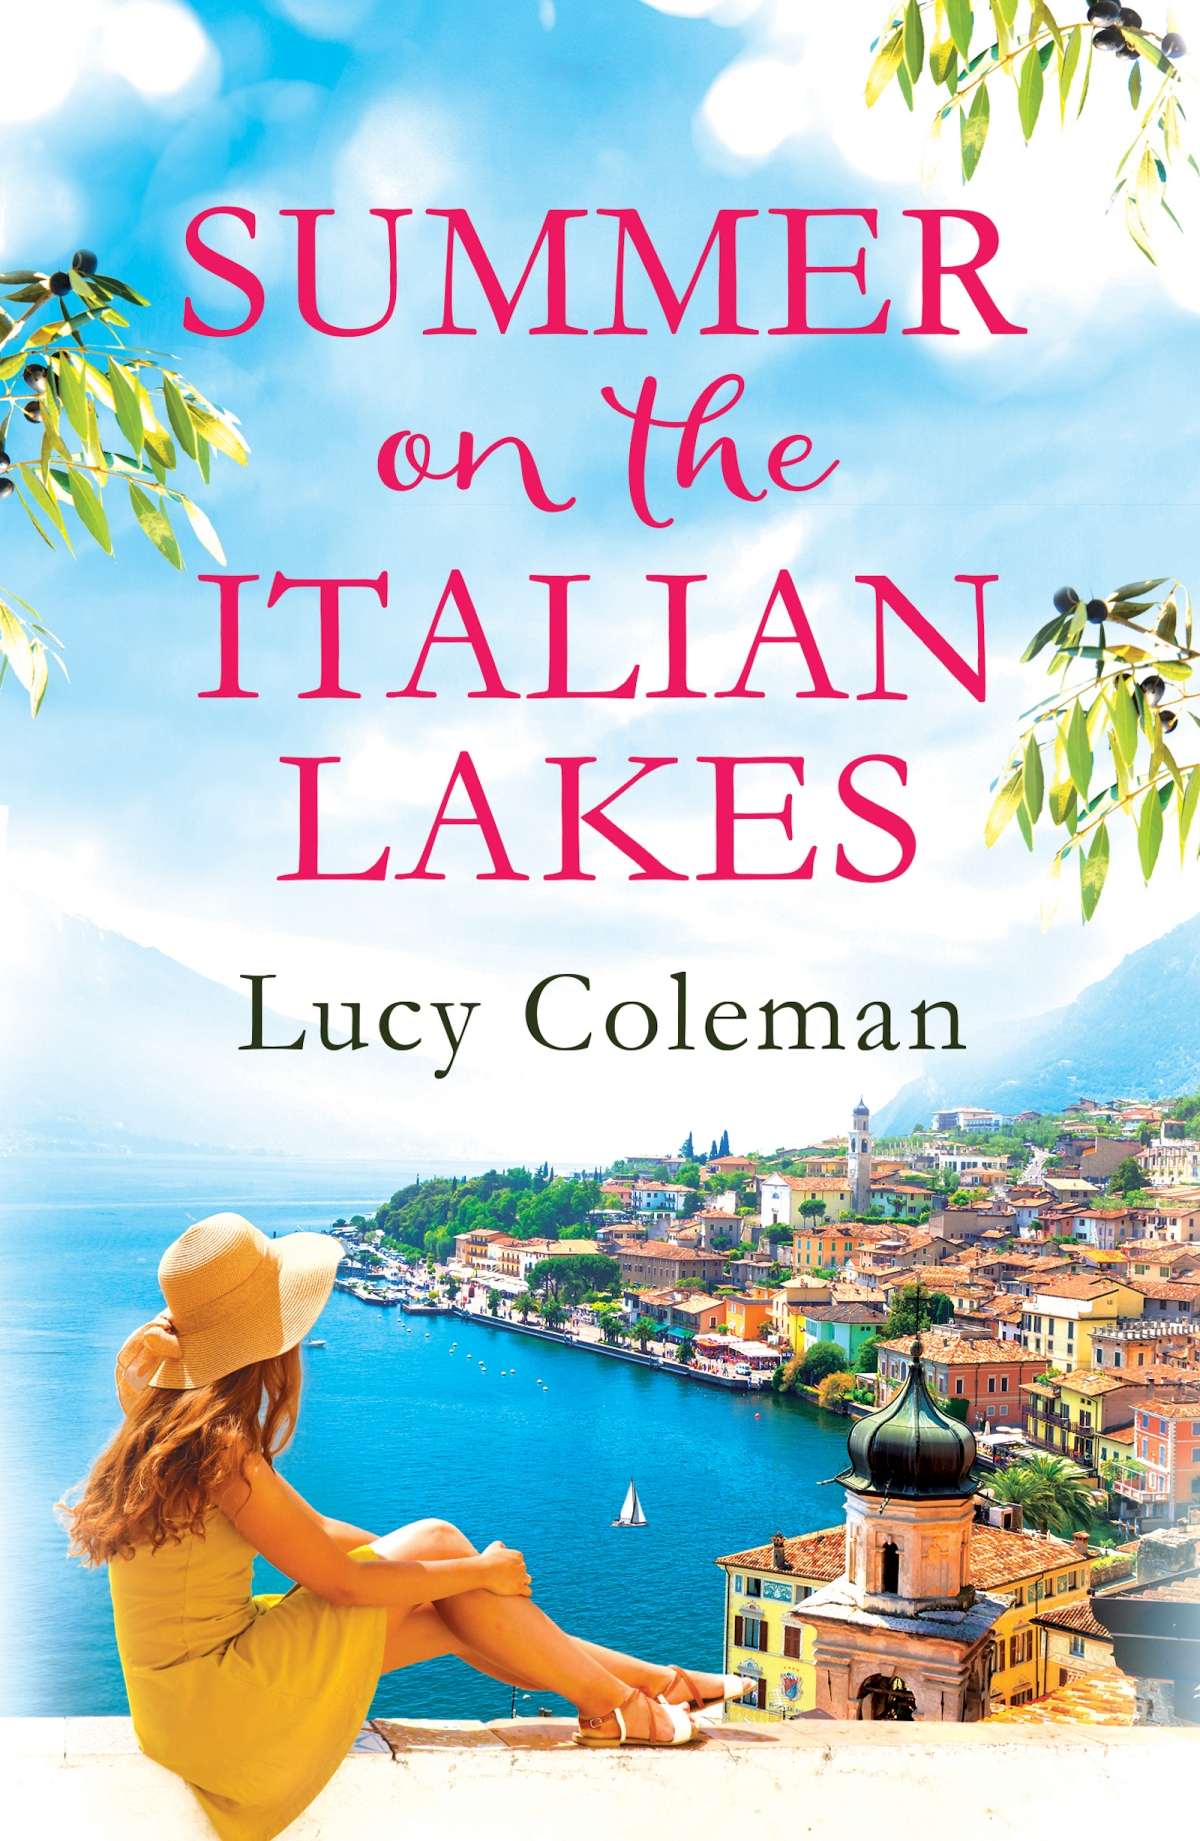 Blog Tour: Summer on the Italian Lakes by LucyColeman